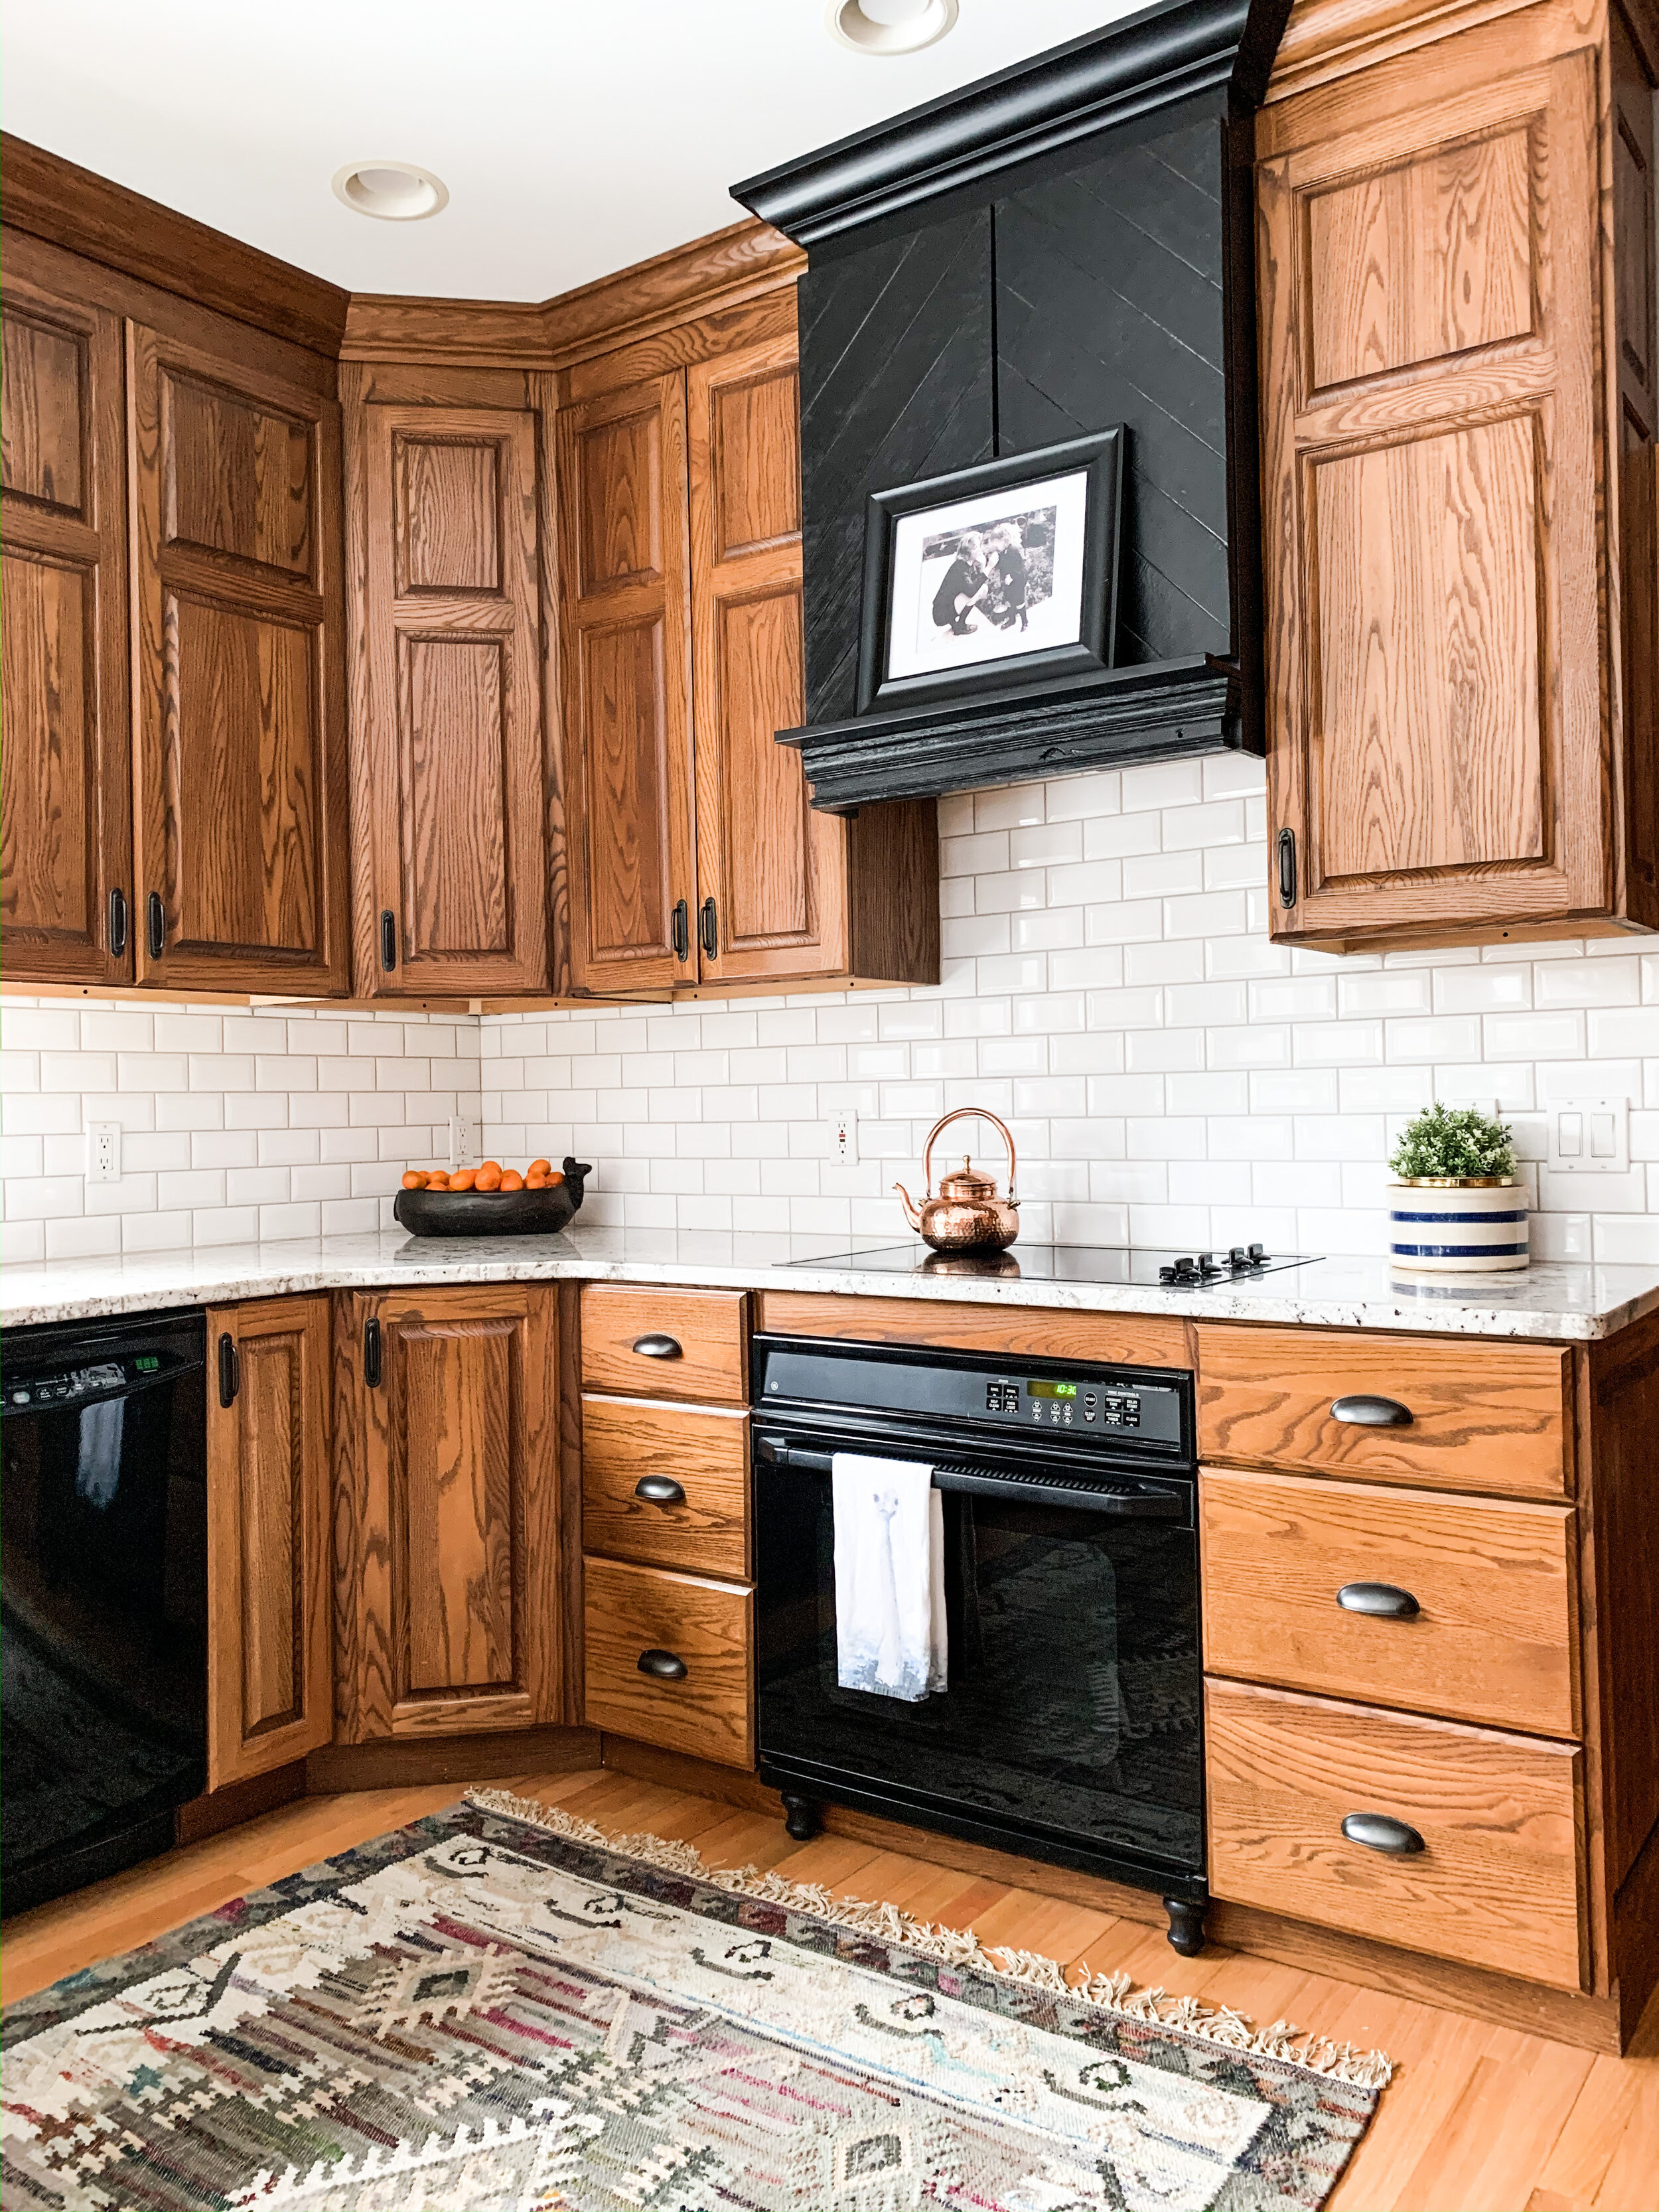 How To Make An Oak Kitchen Cool Again Copper Corners